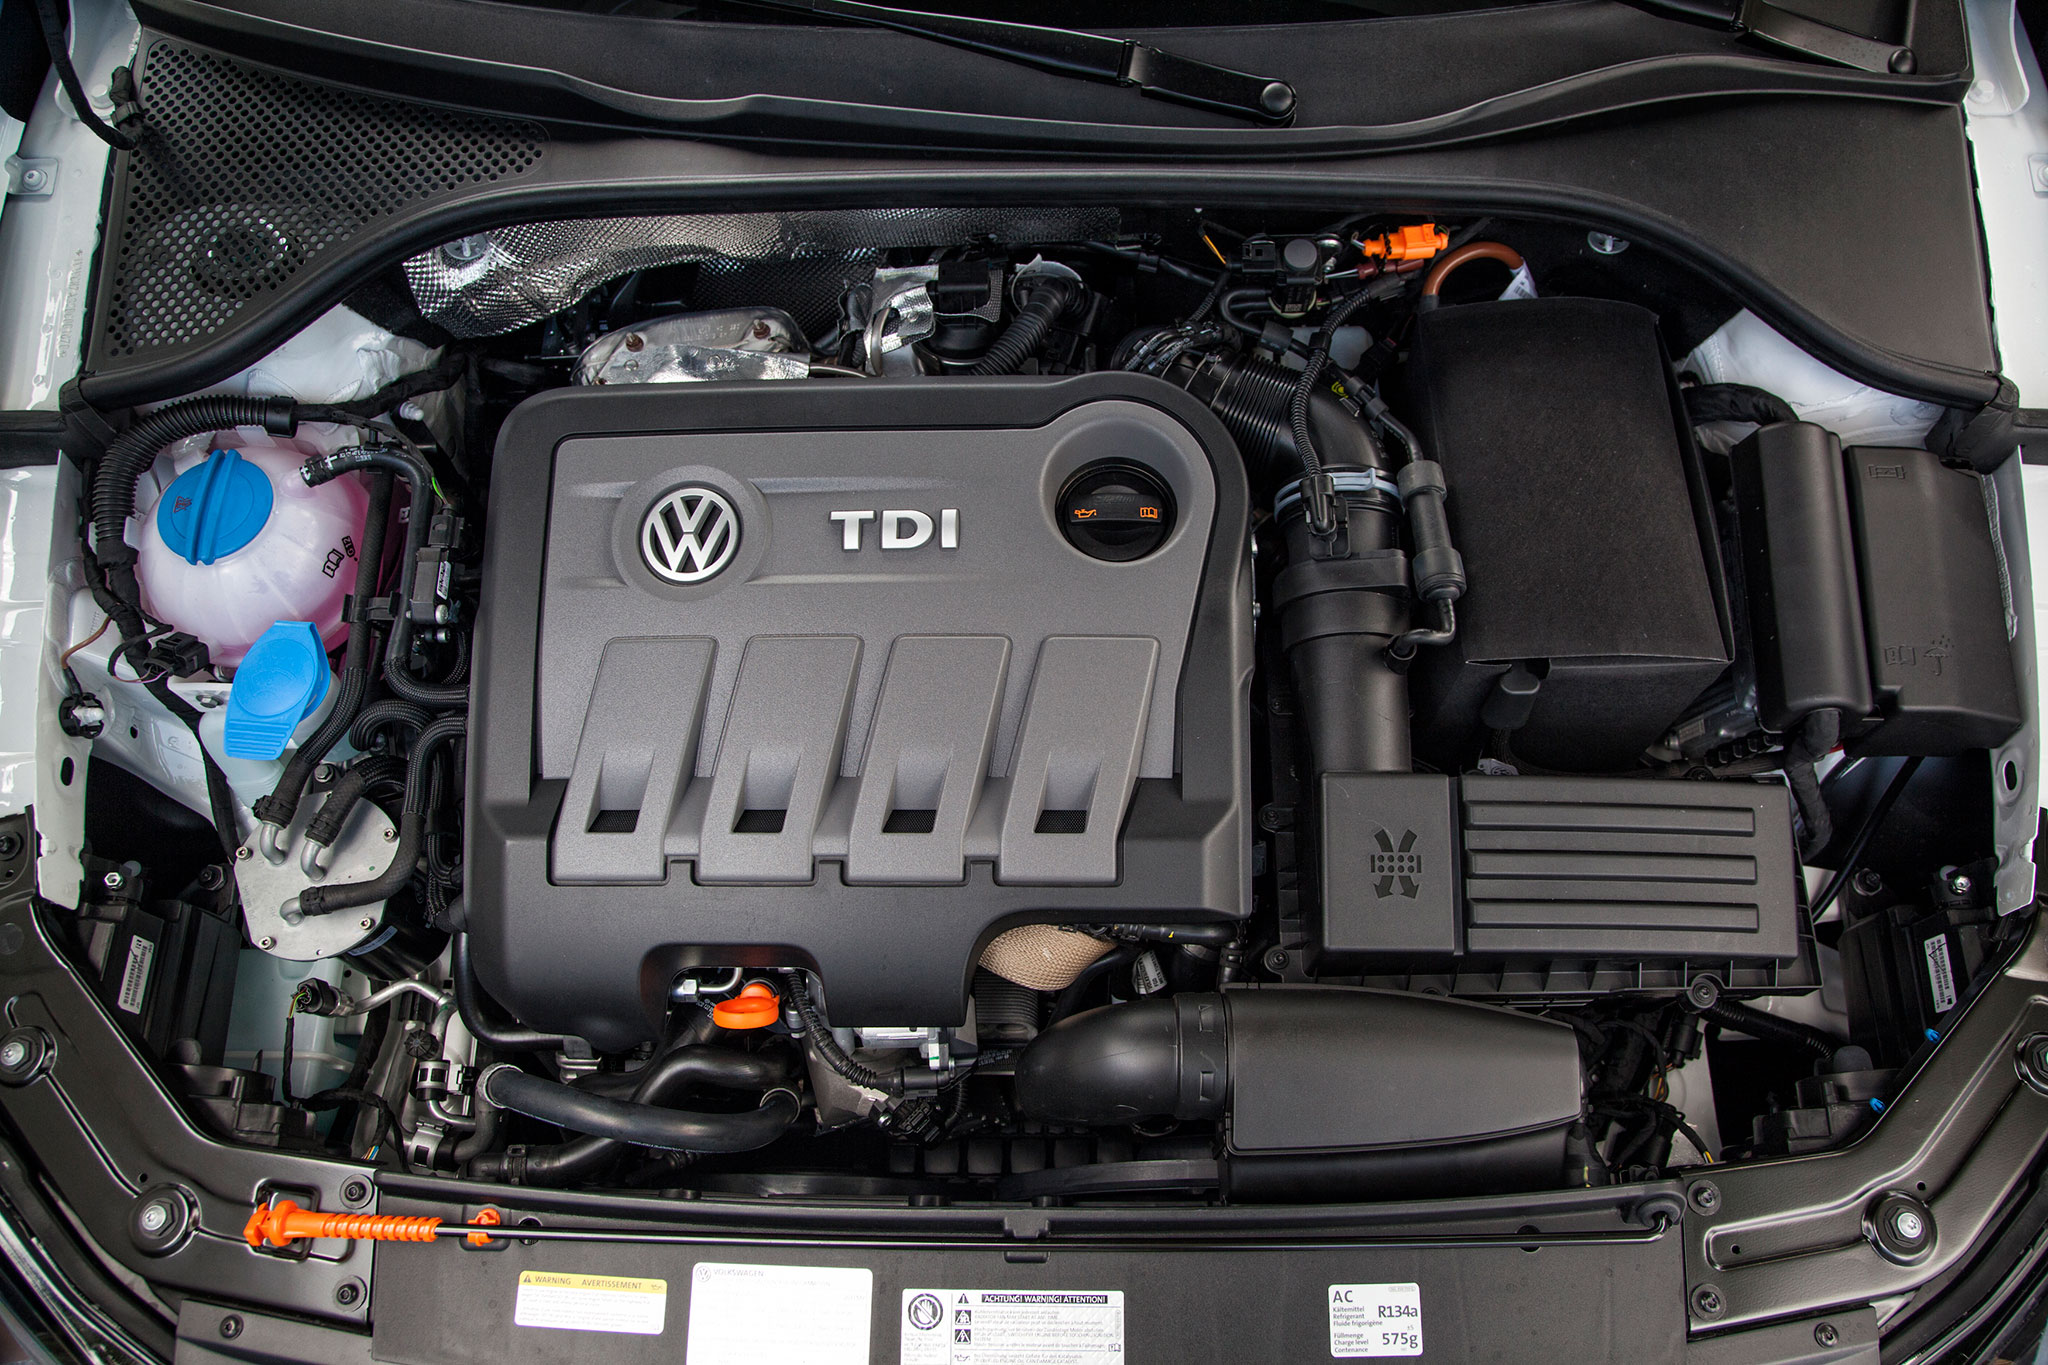 2013 Passat Engine Diagram List Of Schematic Circuit 2004 Vw 2014 Volkswagen 1 8t Sport Around The Block Automobile Rh Automobilemag Com